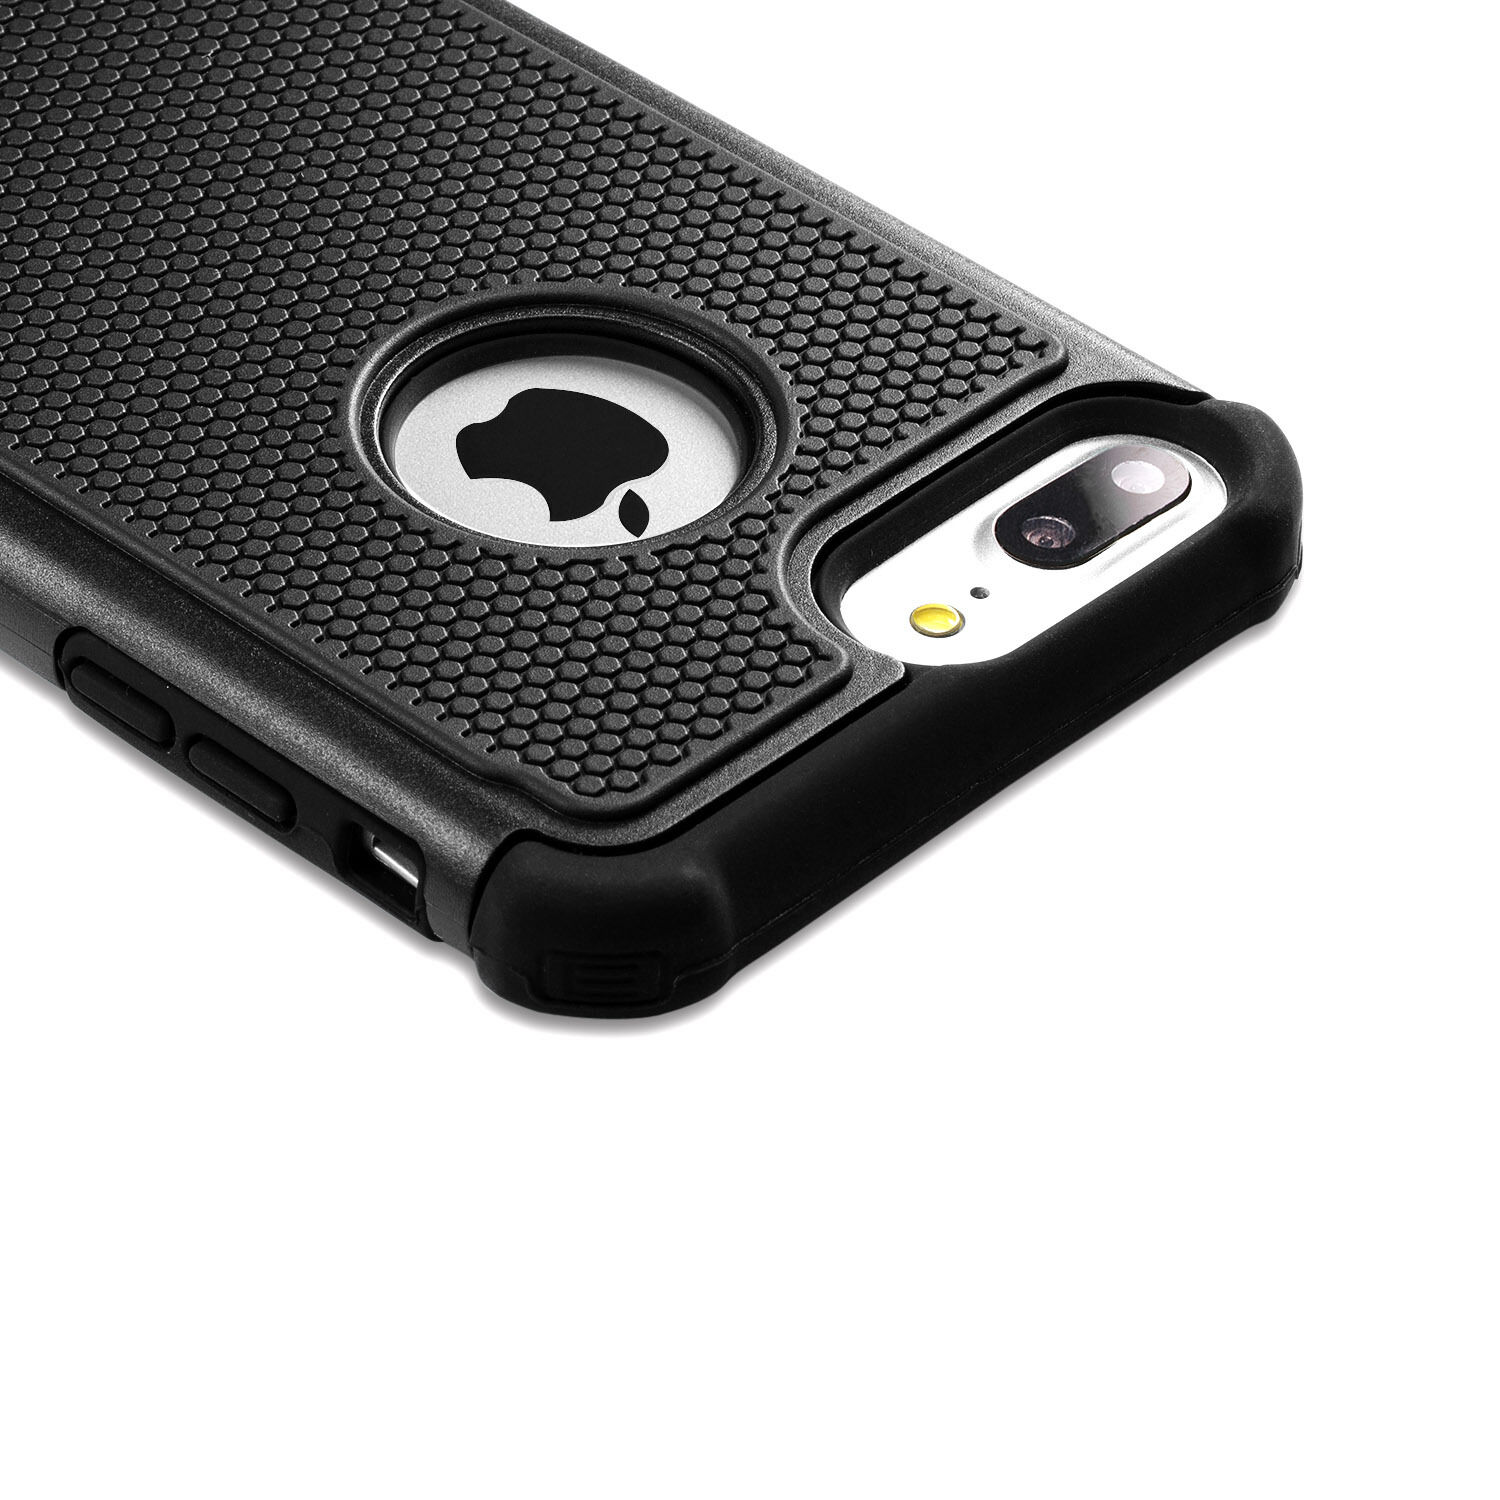 iPhone X 6S 7 8 Plus Case Non-Slip Hybrid Dual Layer Silicone Shockproof Cover